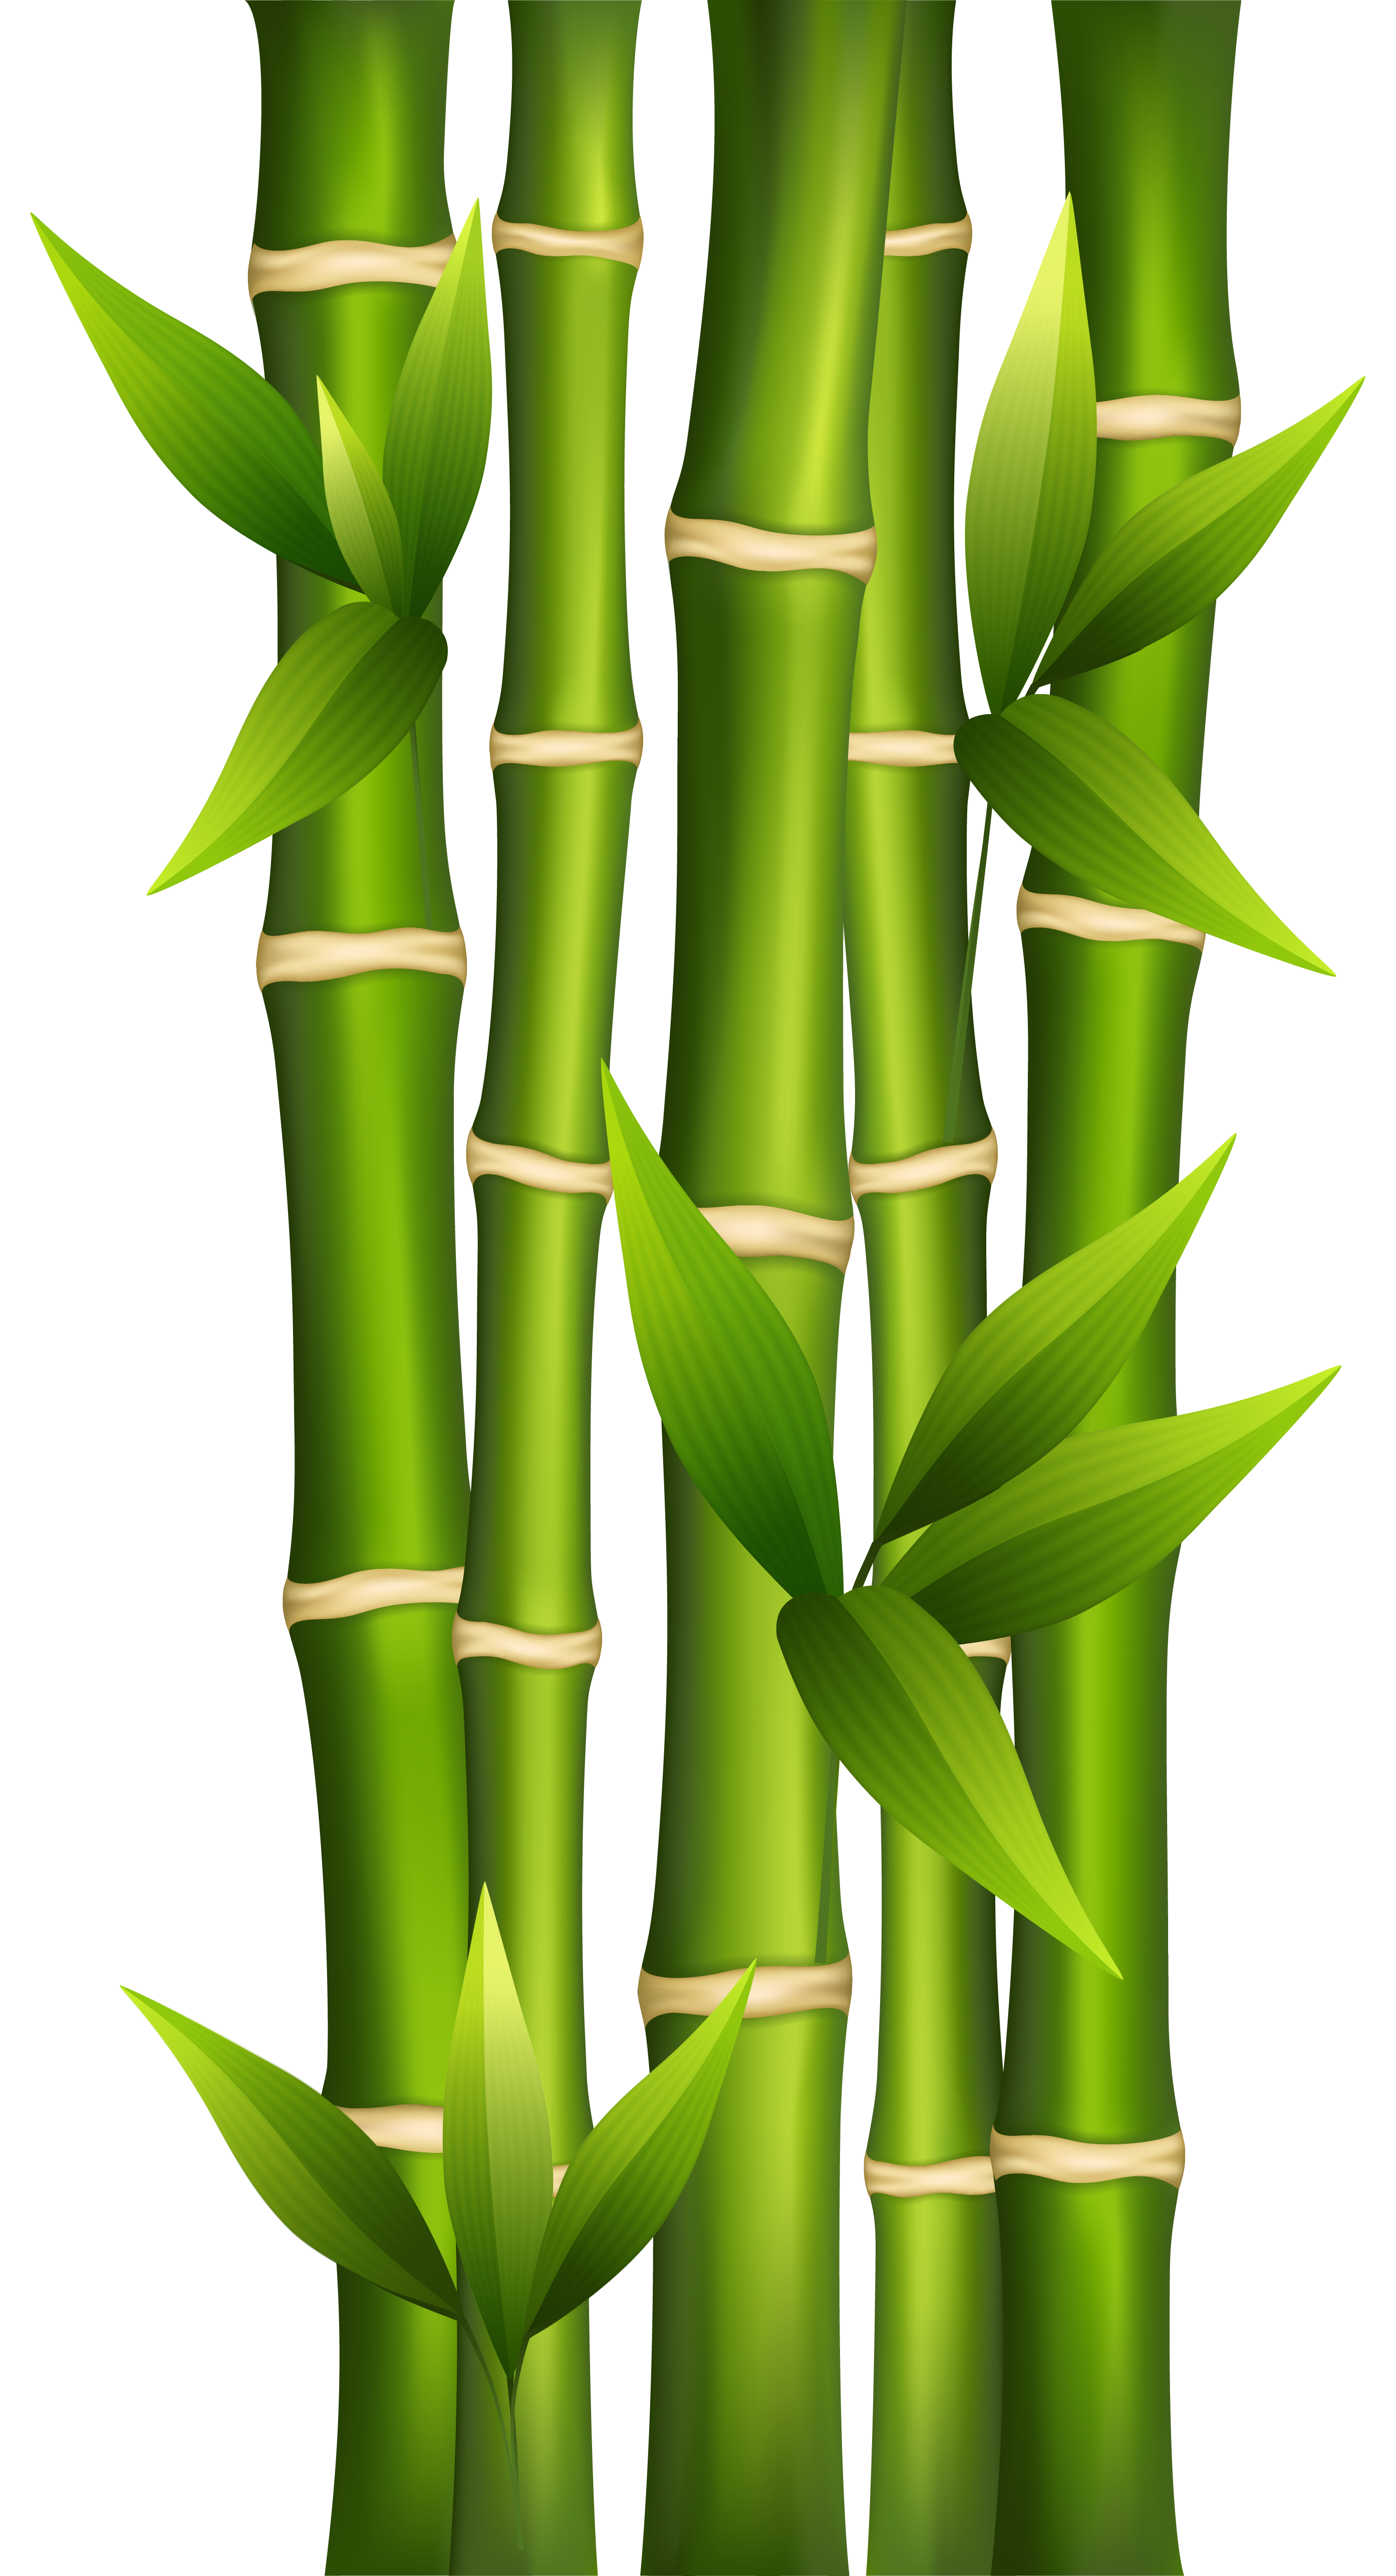 bamboo clipart transparent background